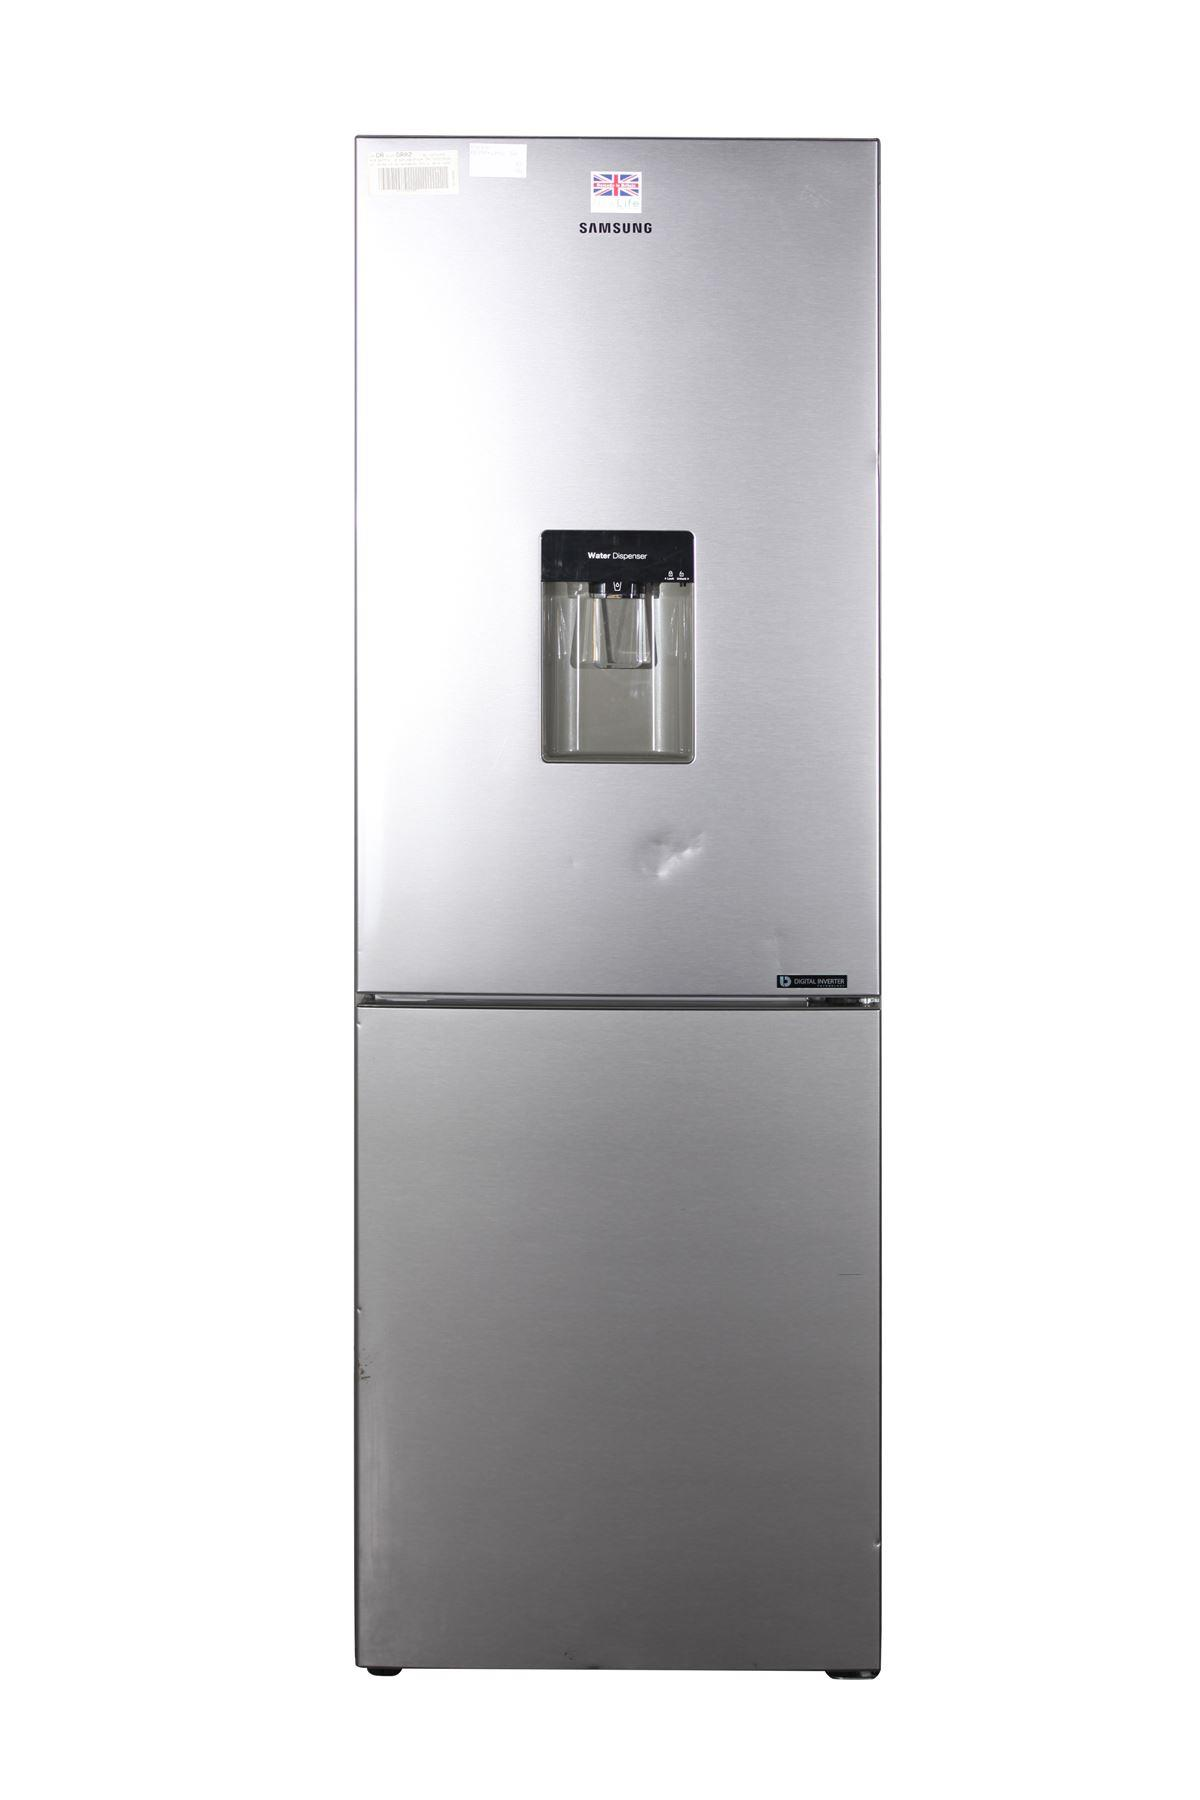 samsung fridge freezer rb29fwjndsa silver online store. Black Bedroom Furniture Sets. Home Design Ideas